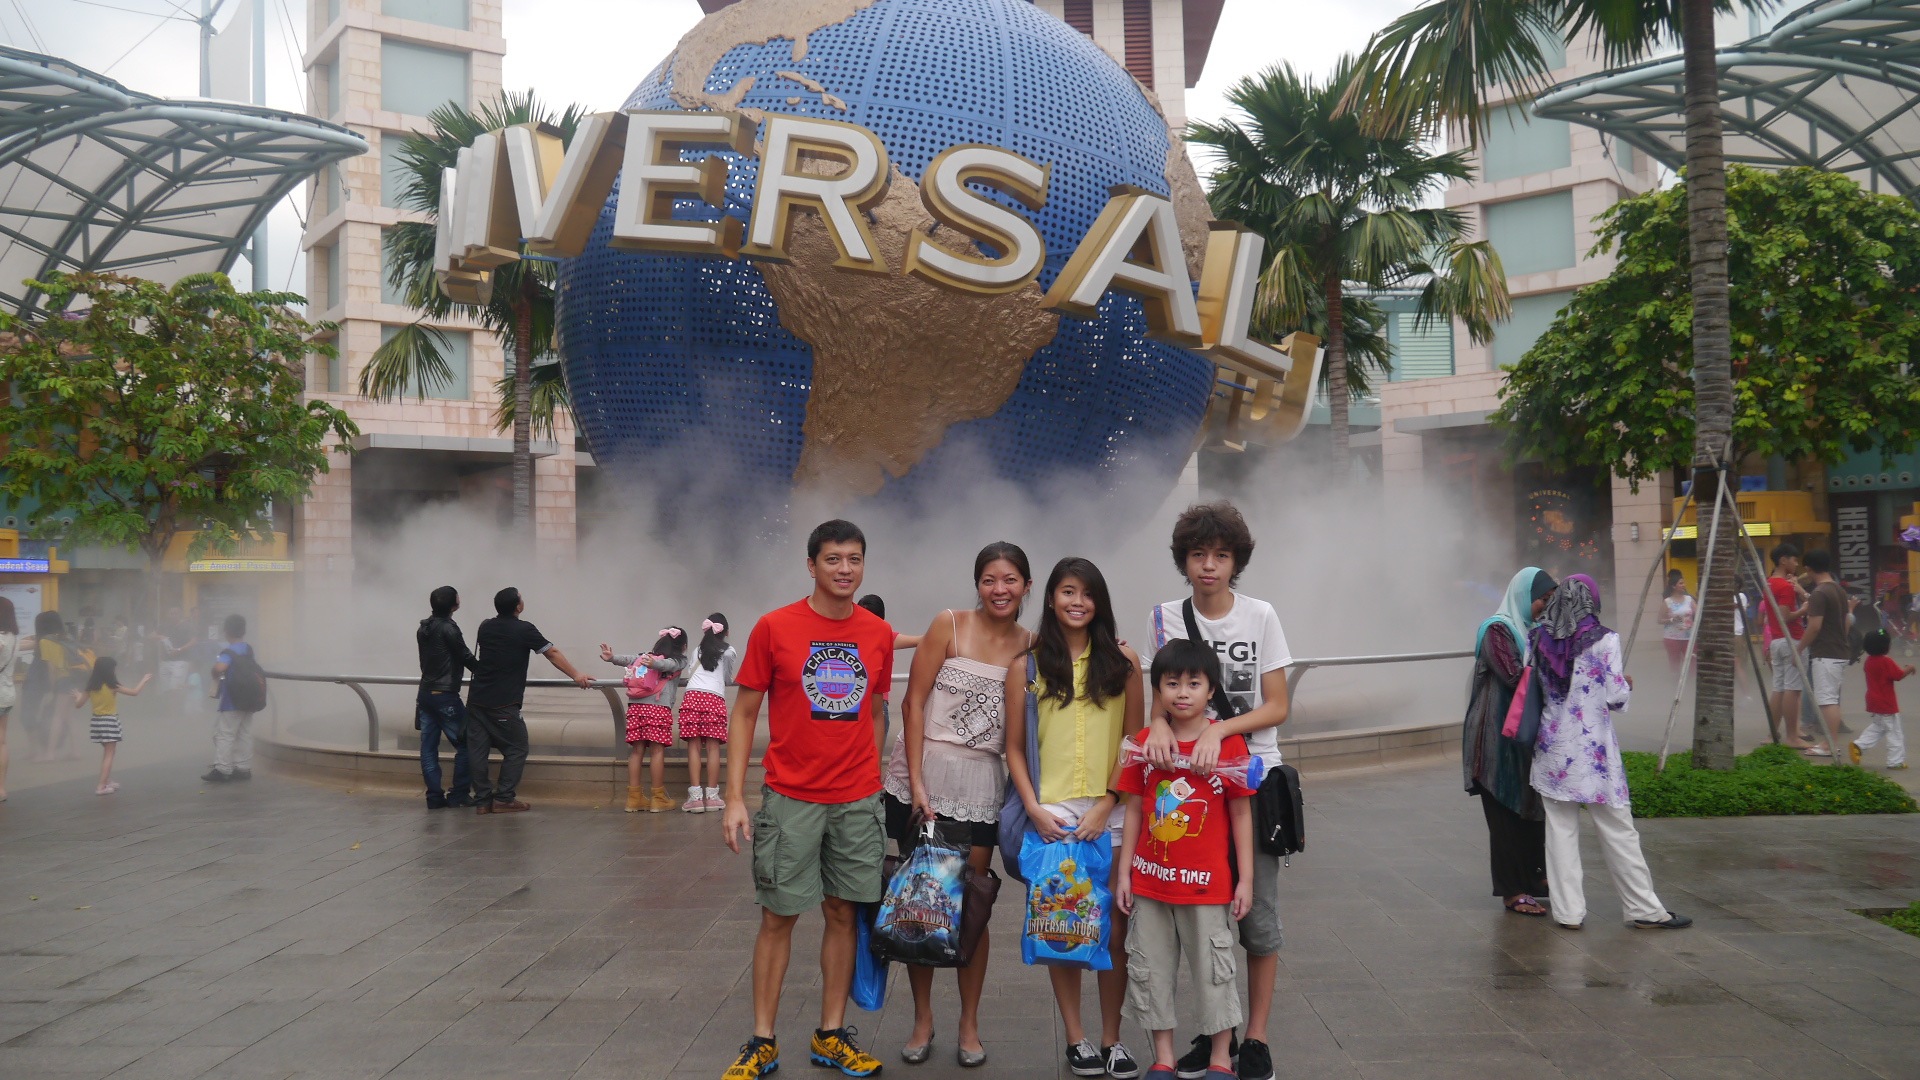 Universal Studios Singapore may not be as big as the the one in Los Angeles, but the fun was just the same!